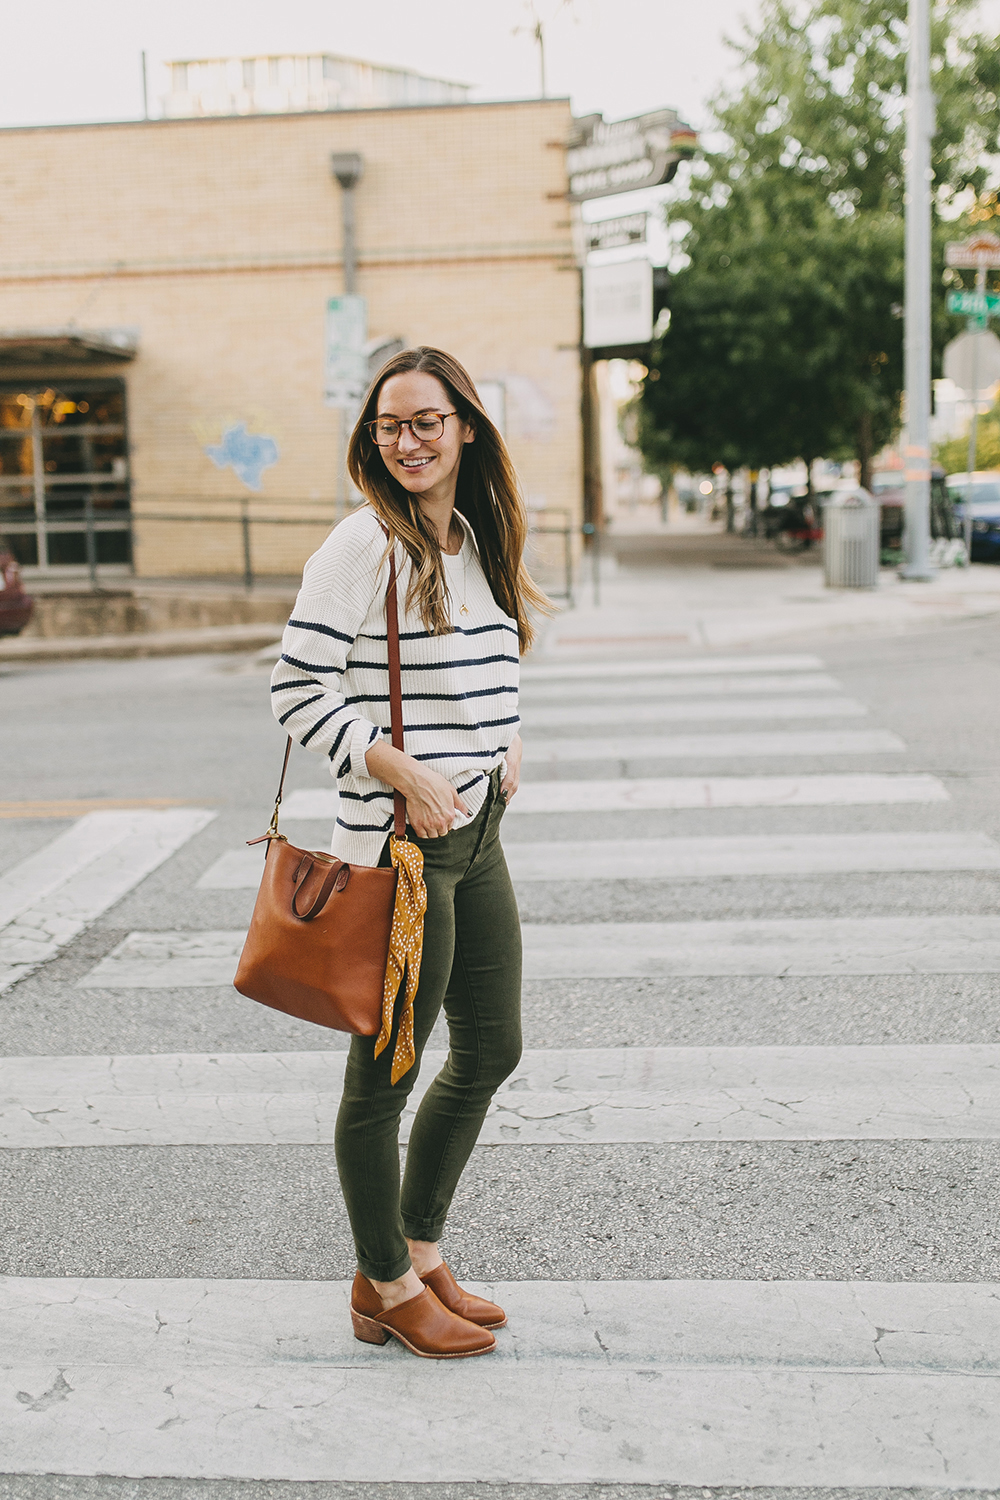 livvyland-blog-olivia-watson-austin-texas-fashion-lifestyle-blogger-madewell-olive-skinny-jeans-striped-sweater-trunk-club-review-2